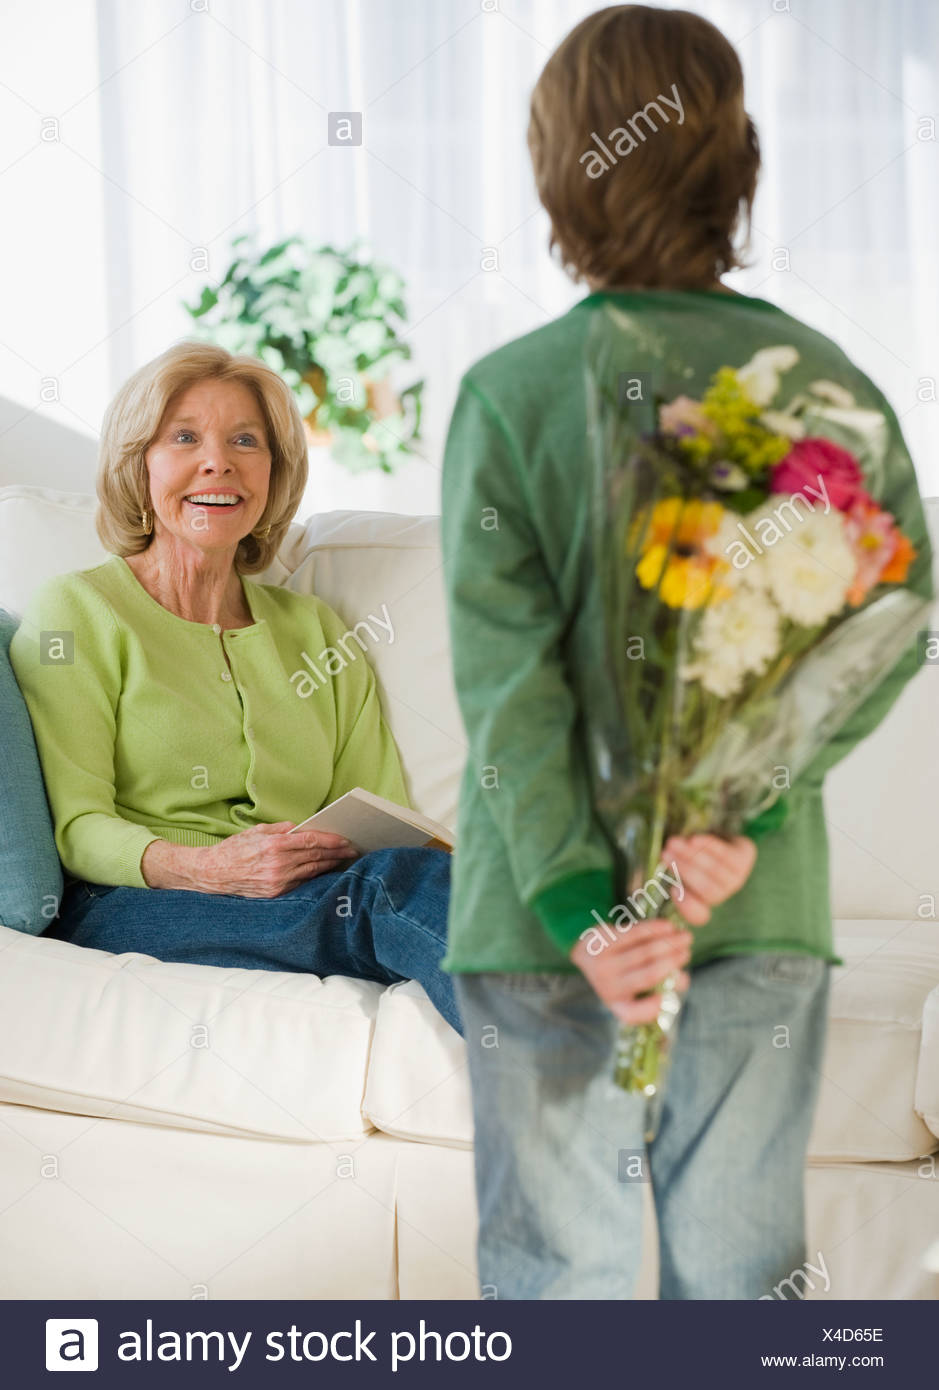 Grandson surprising grandmother with flowers Stock Photo